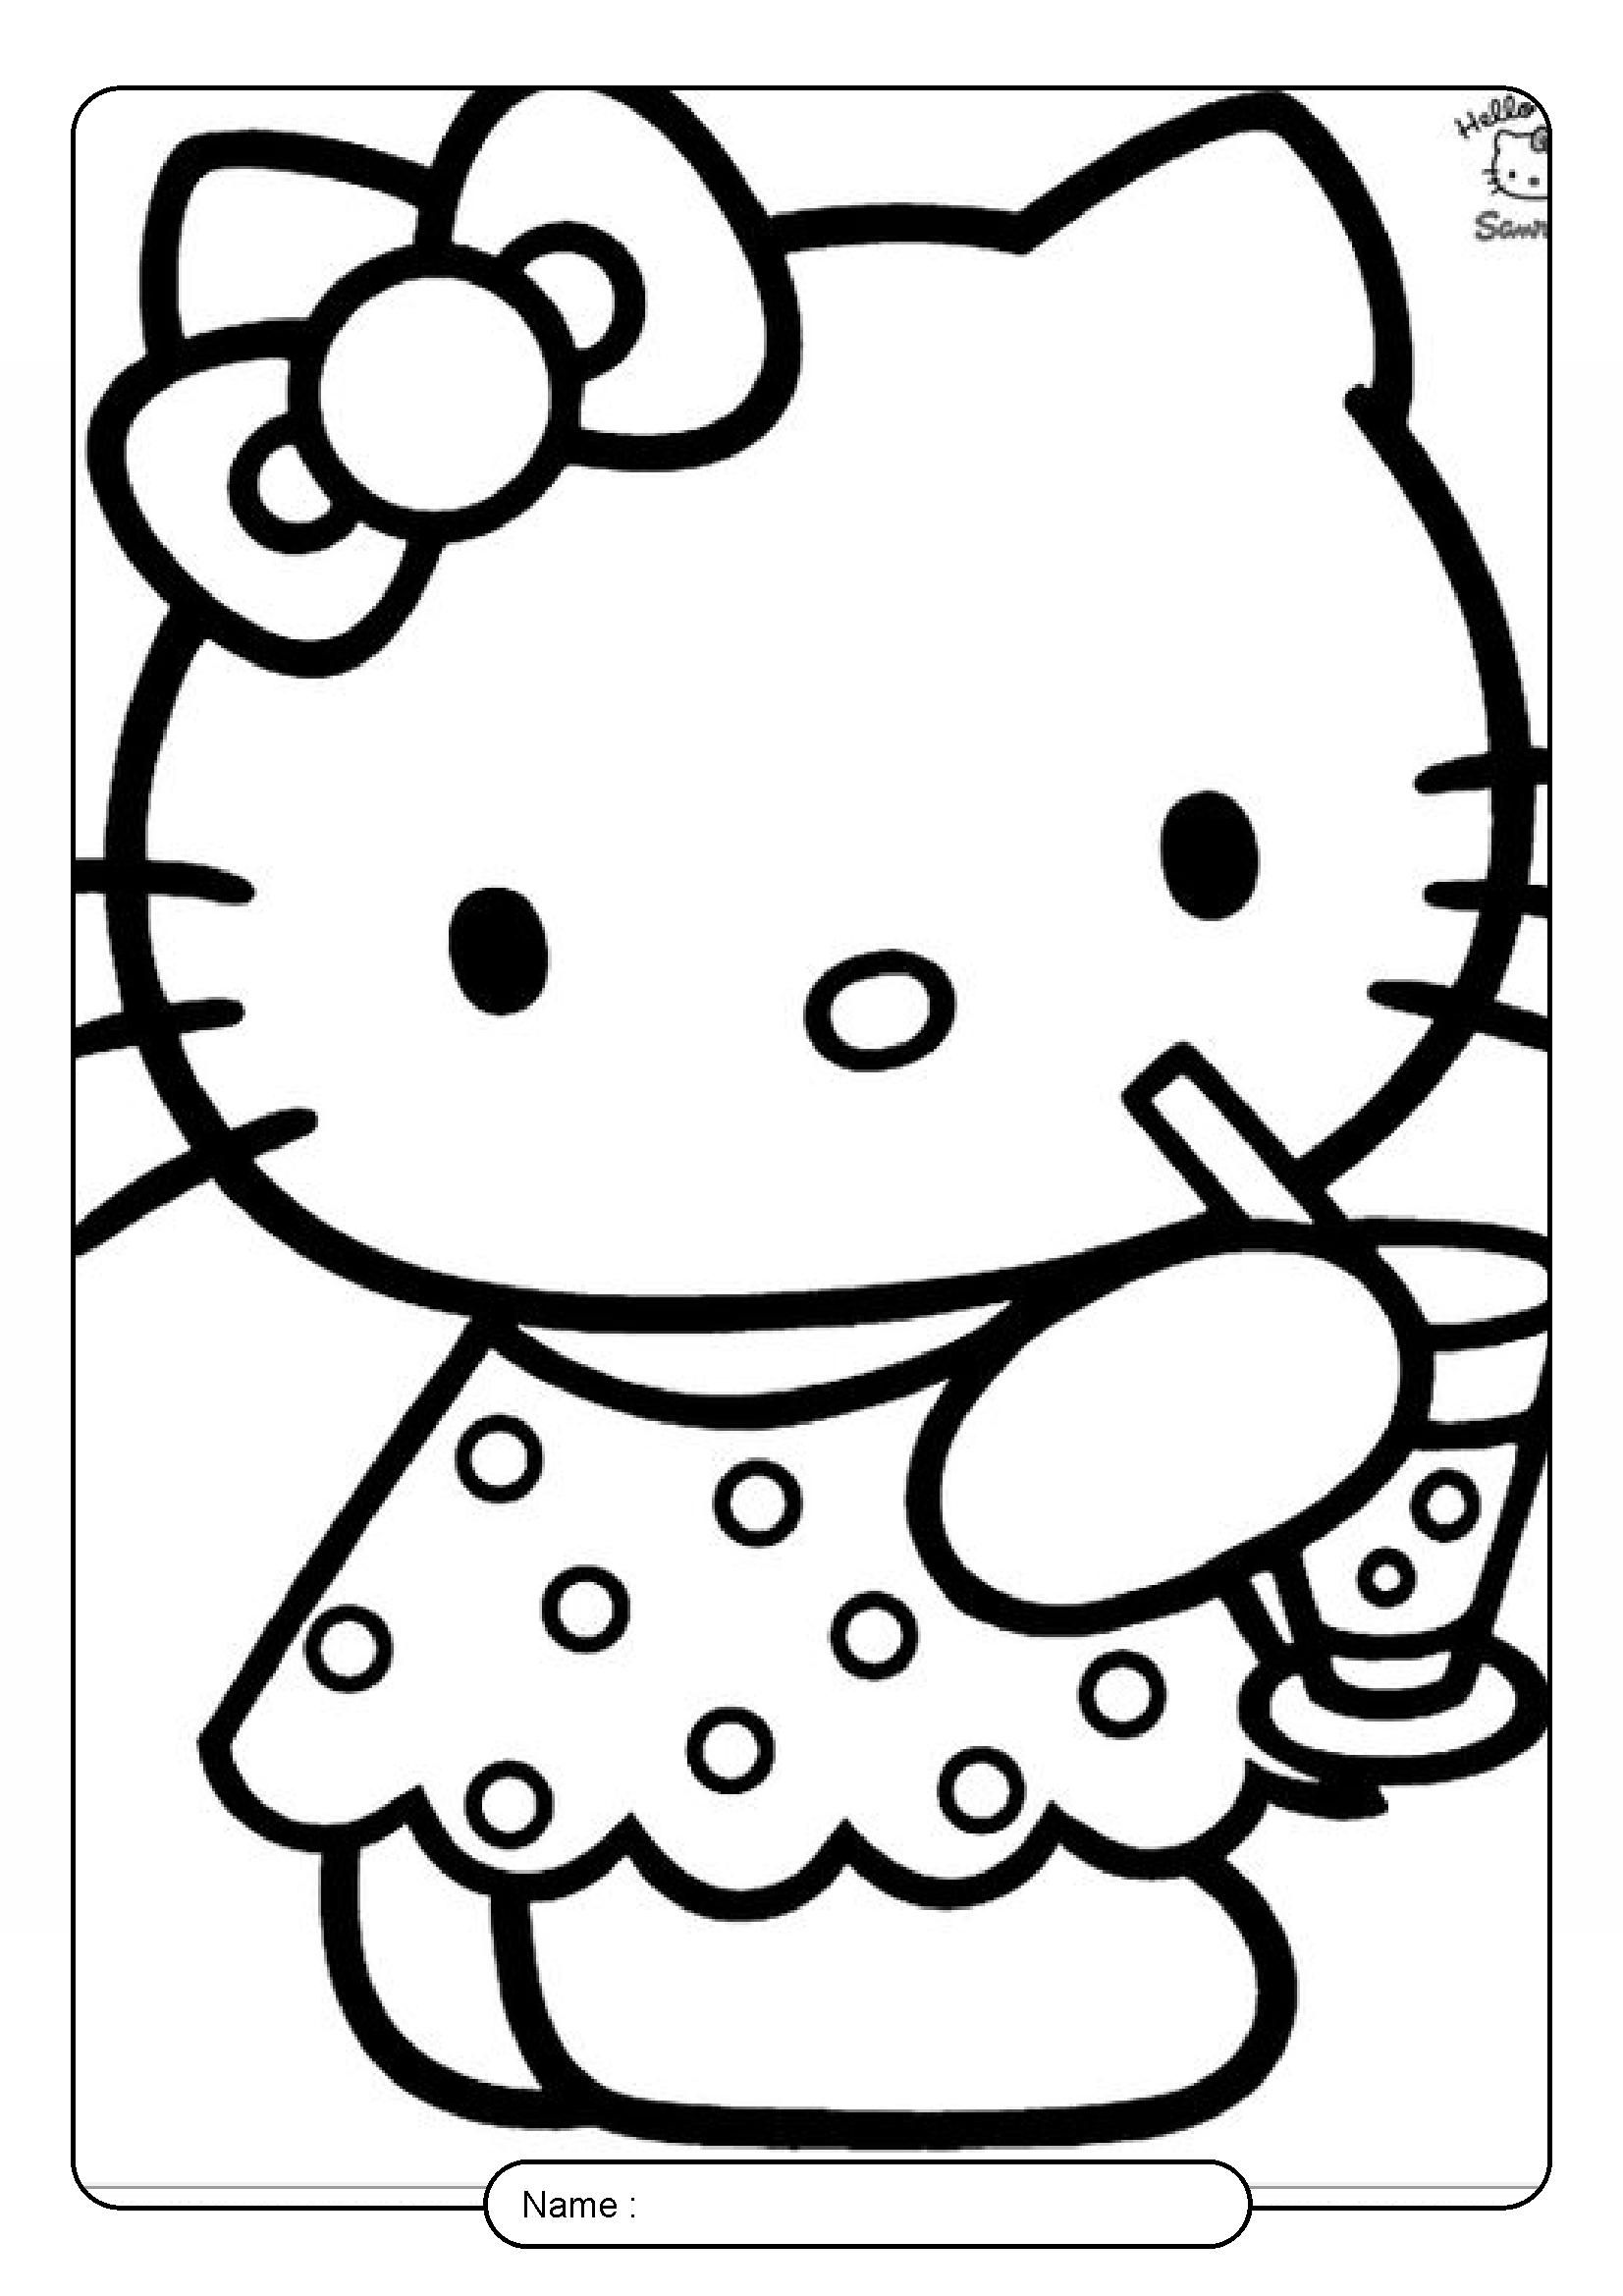 Kitty Drinks Juice Hello Kitty Coloring Pages In 2021 Hello Kitty Coloring Kitty Coloring Hello Kitty Colouring Pages